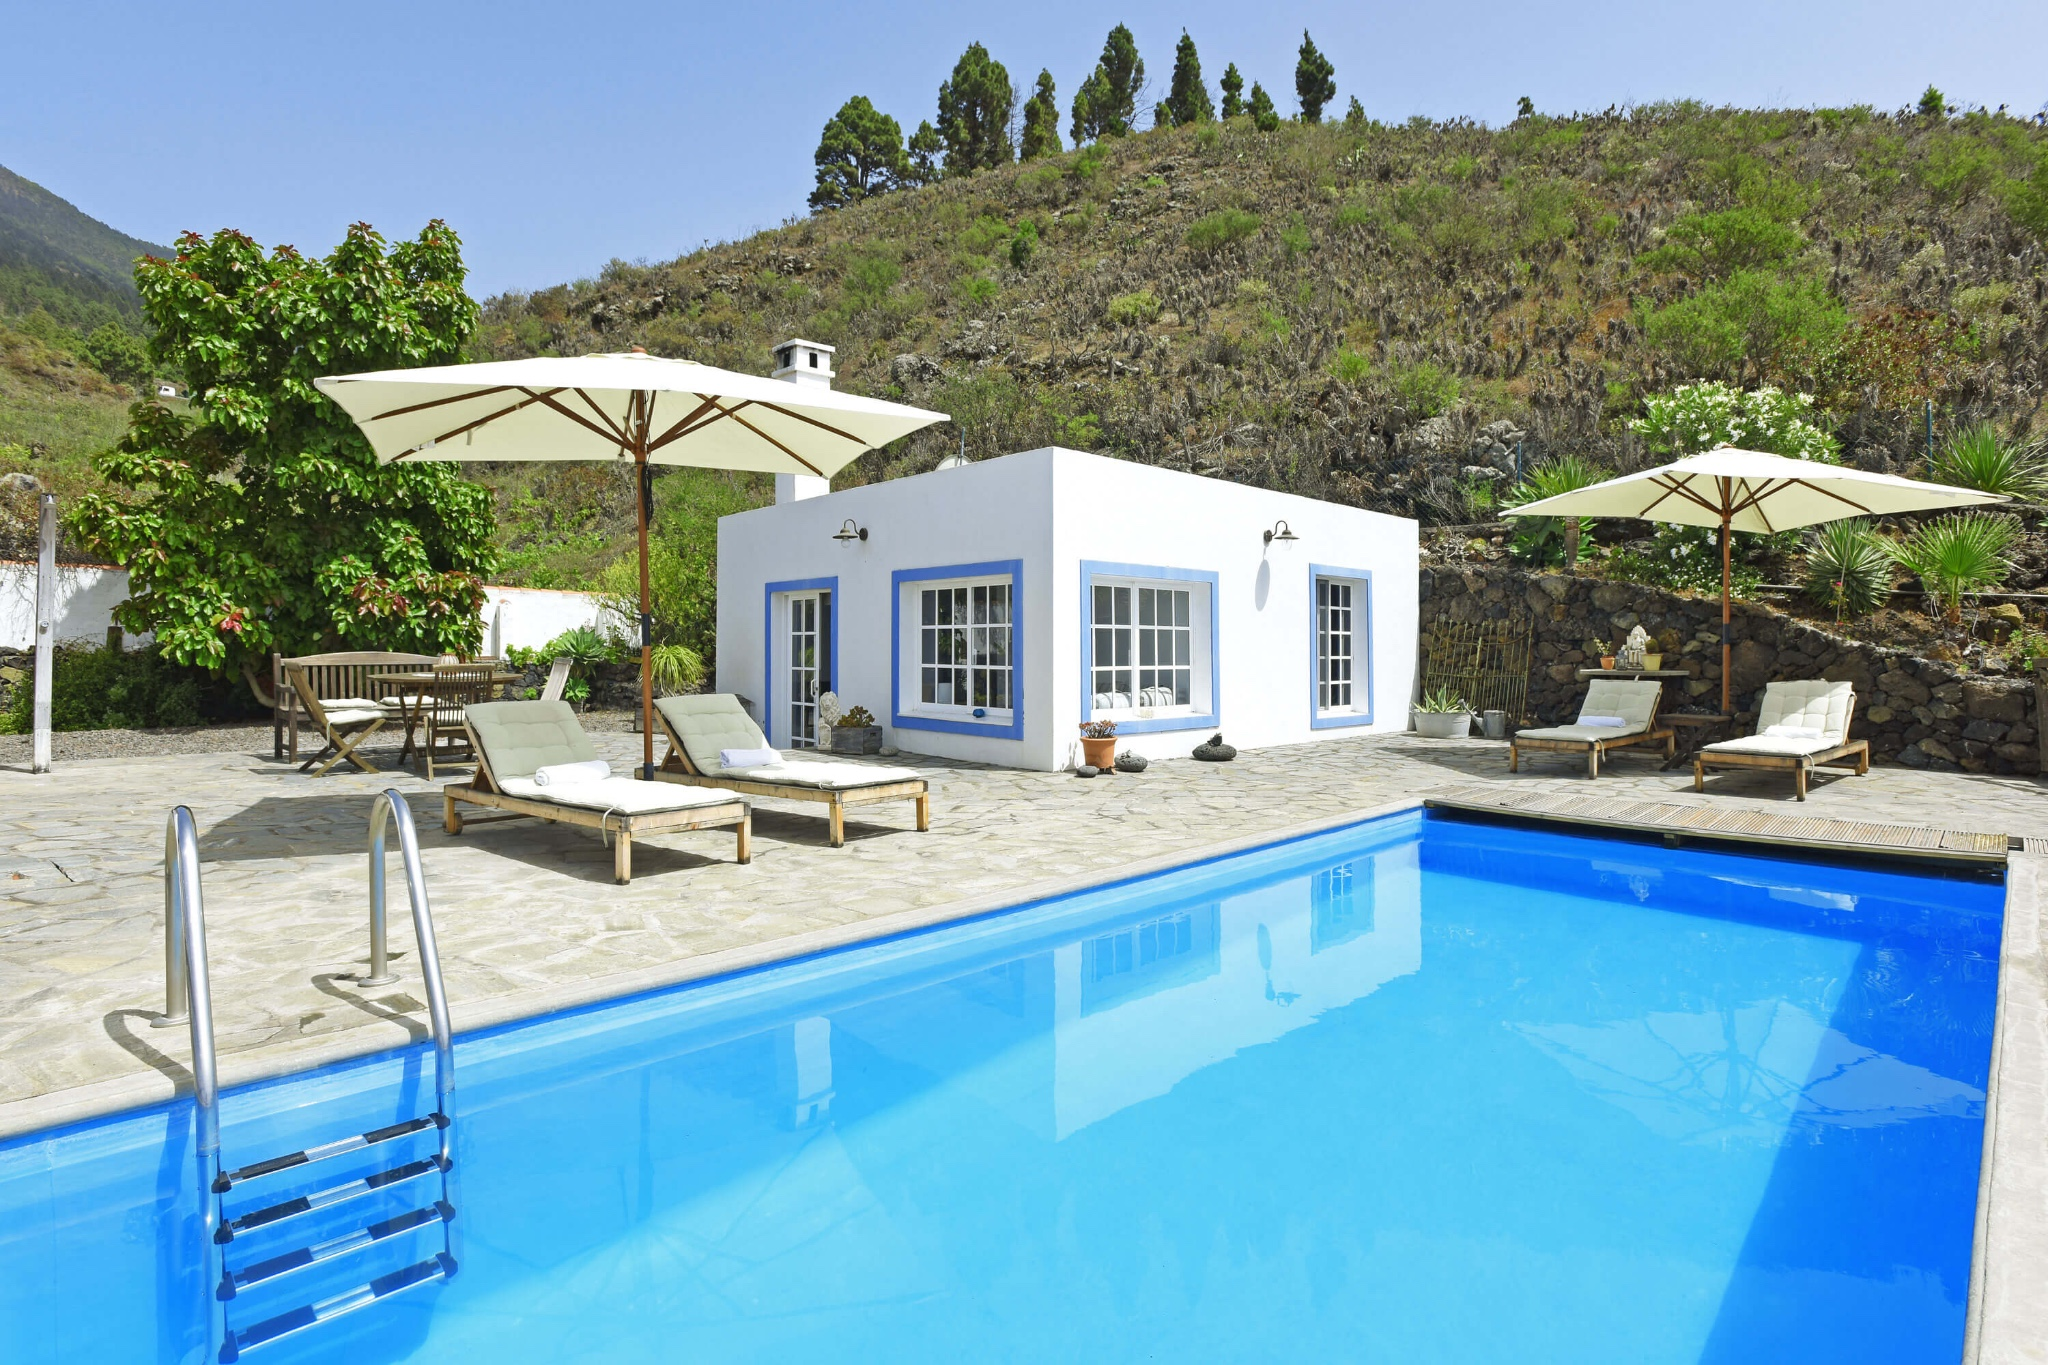 Lovely holiday home surrounded by nature with a wonderful view and solar heated communal pool